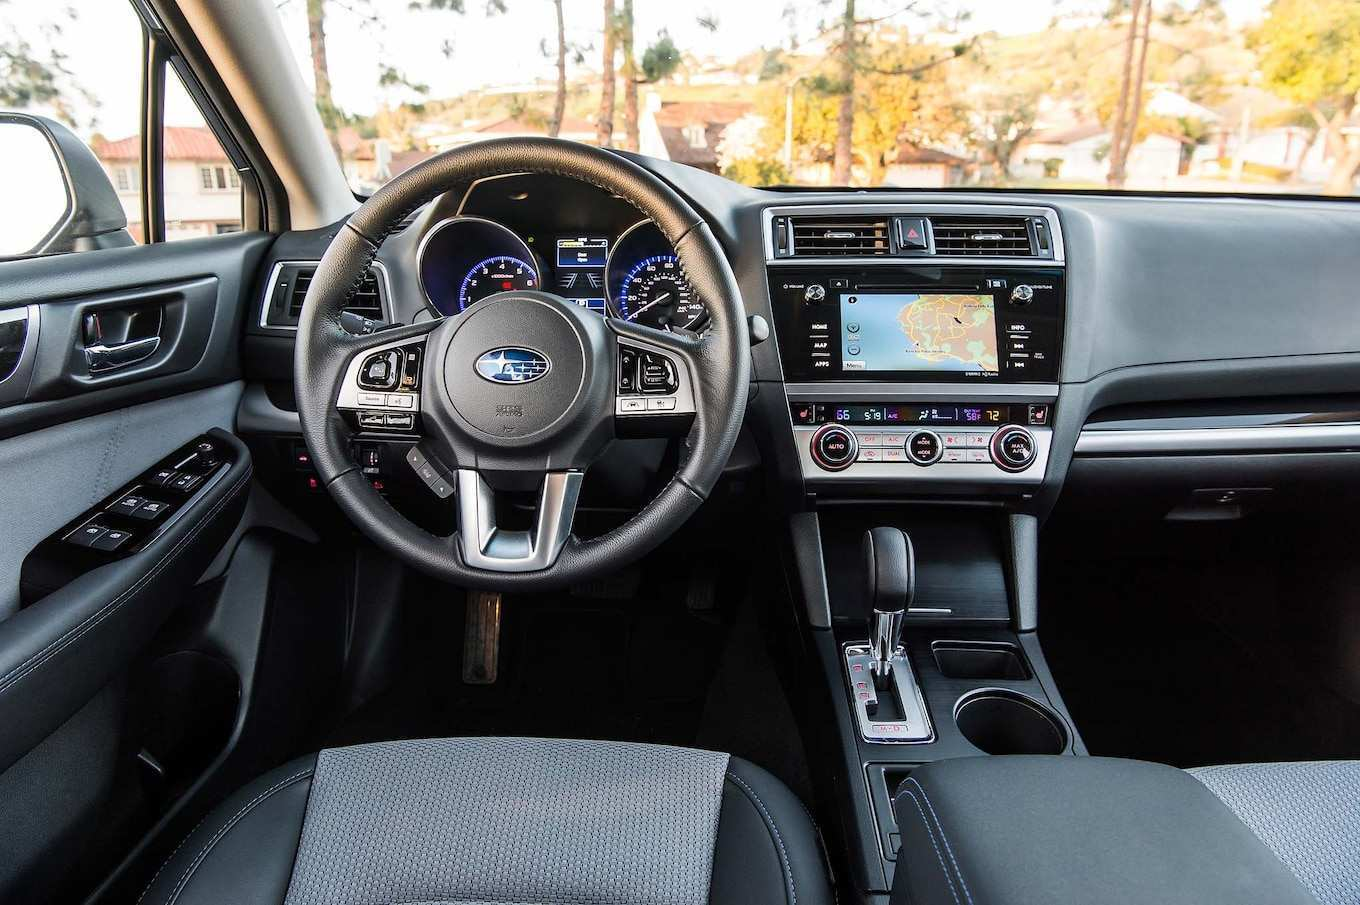 90 The Best Subaru Legacy 2020 Interior Redesign And Review